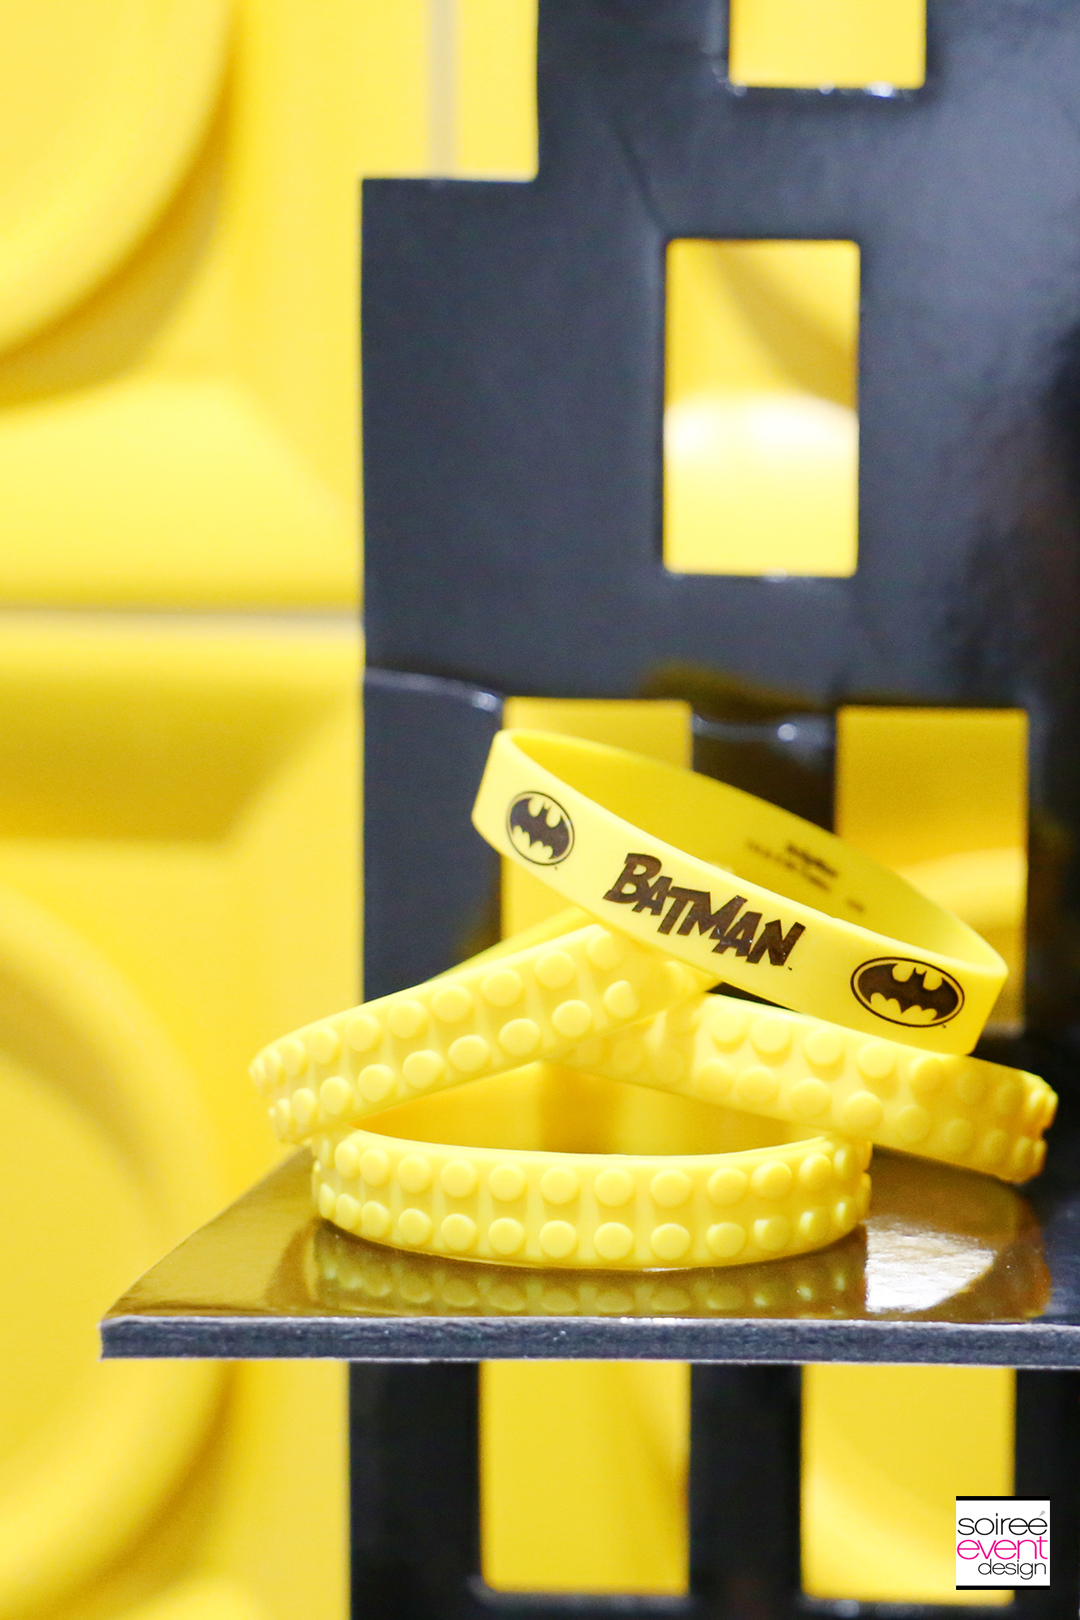 Lego Batman Party Ideas - Lego Batman Bracelets